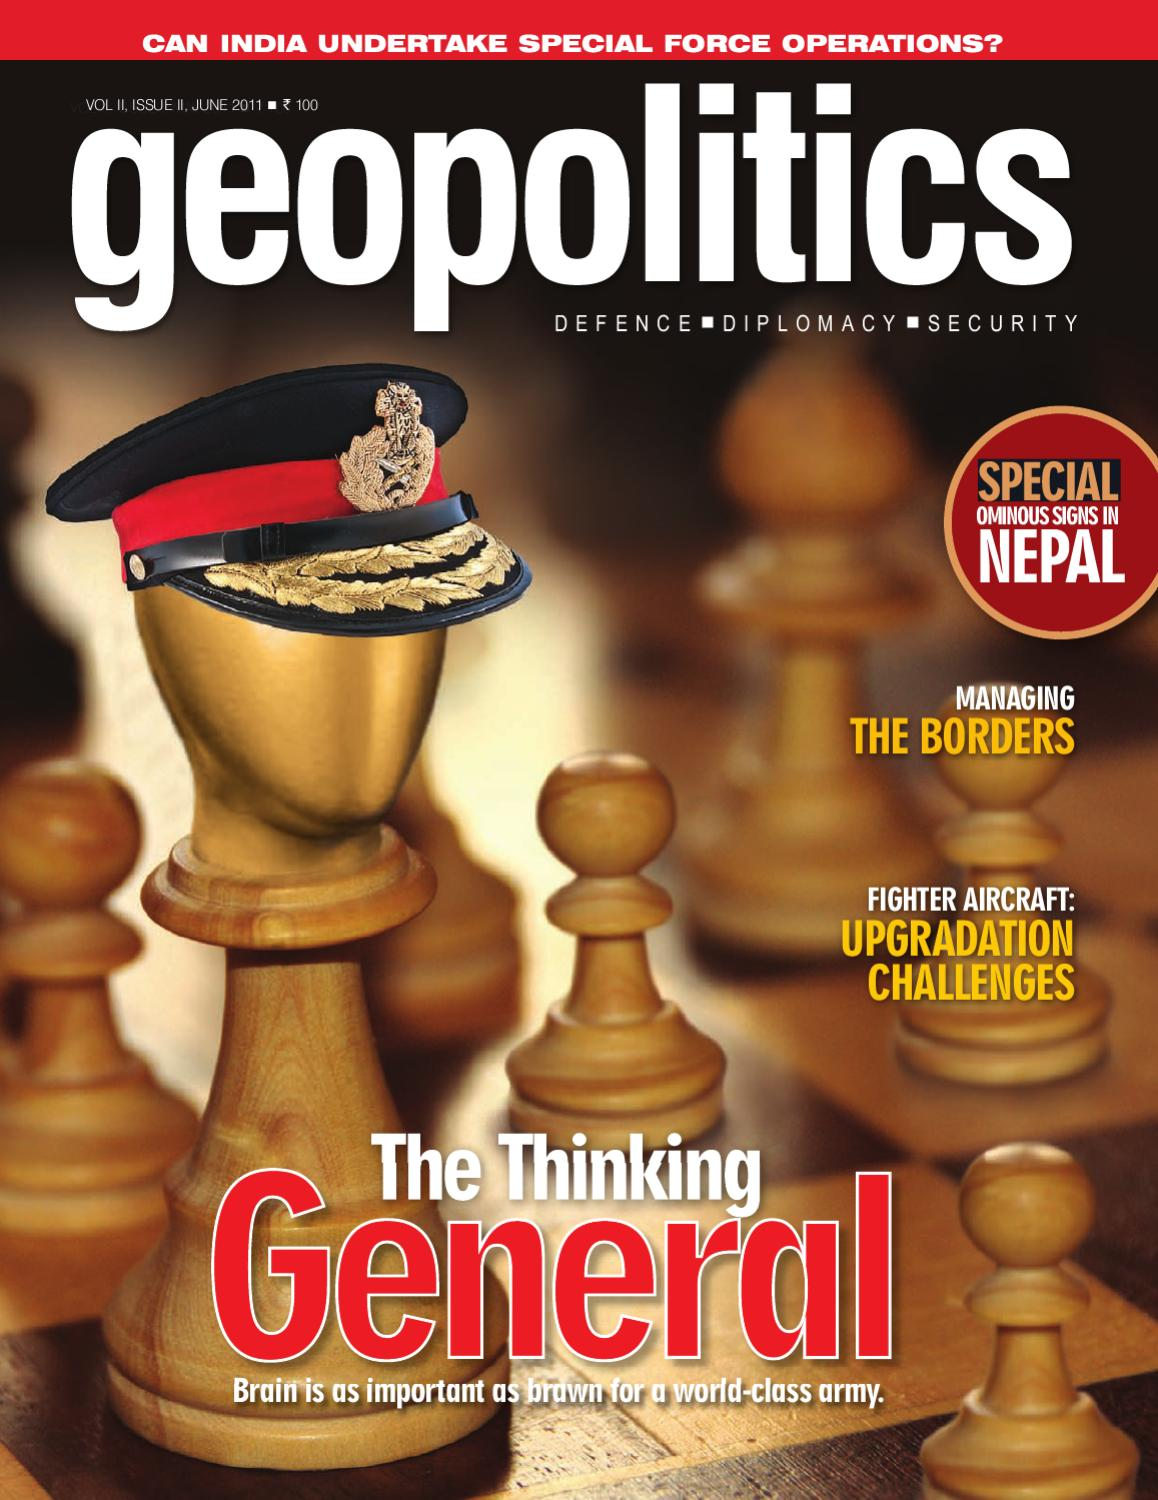 Geopolitics June 2011 By Newsline Issuu Move Checkmate Diagram Furthermore Chess Moves In Addition The Event